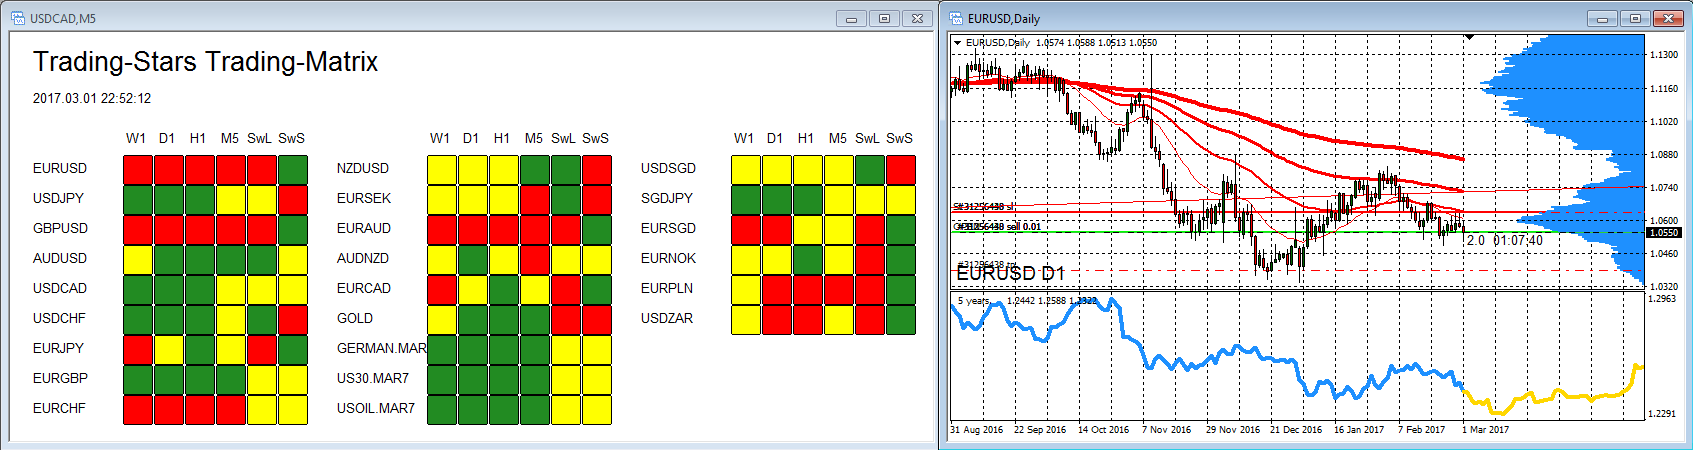 Free Supply and Demand MT4 Indicator Download. Trading the DIAD Forex EA the best Forex trading techniques are the ones using support resistance concepts.